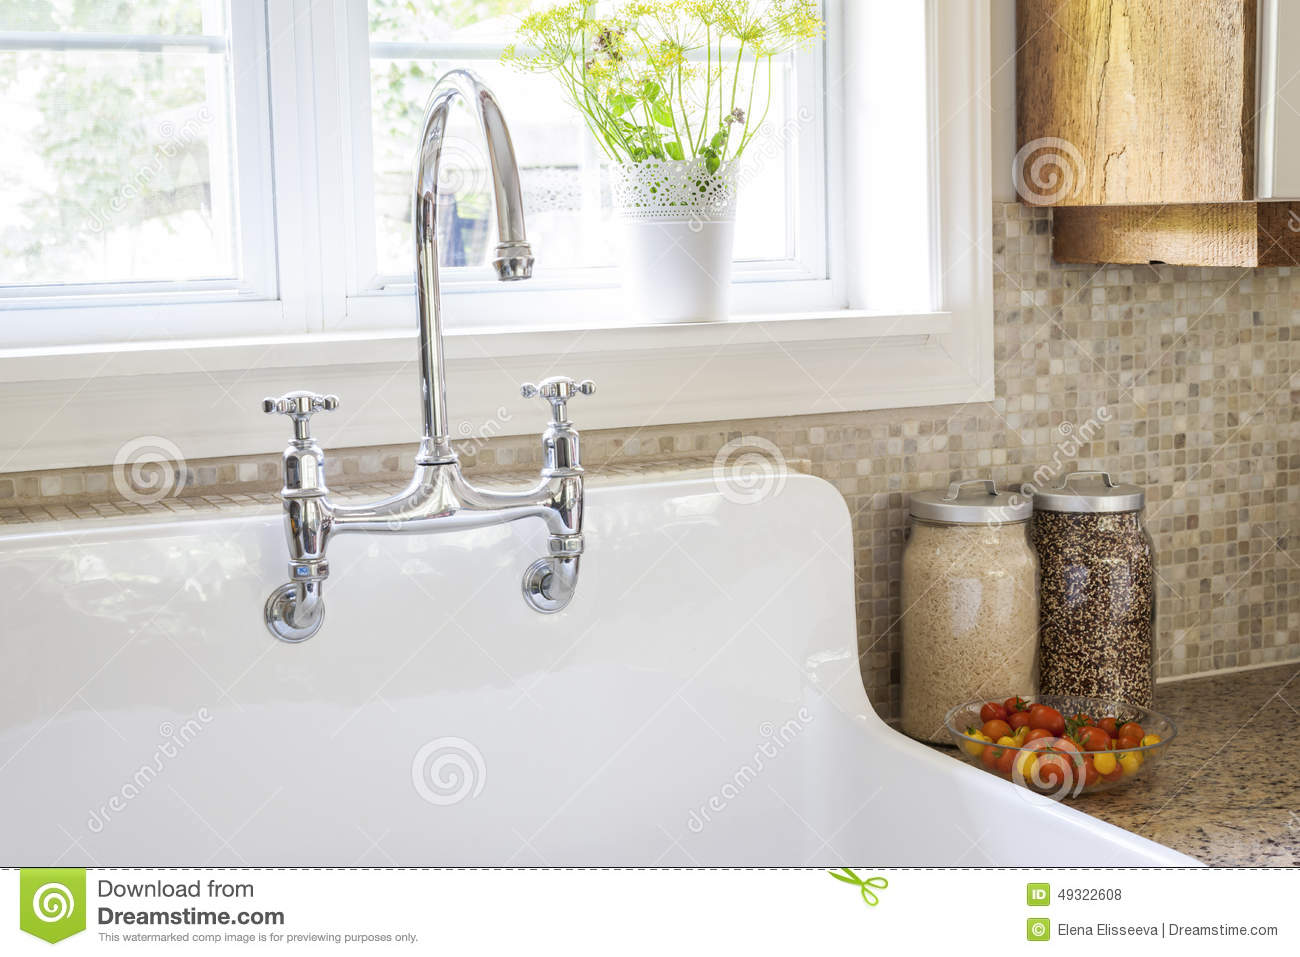 Kitchen Sink And Faucet Stock Photo Image Of Inside 49322608